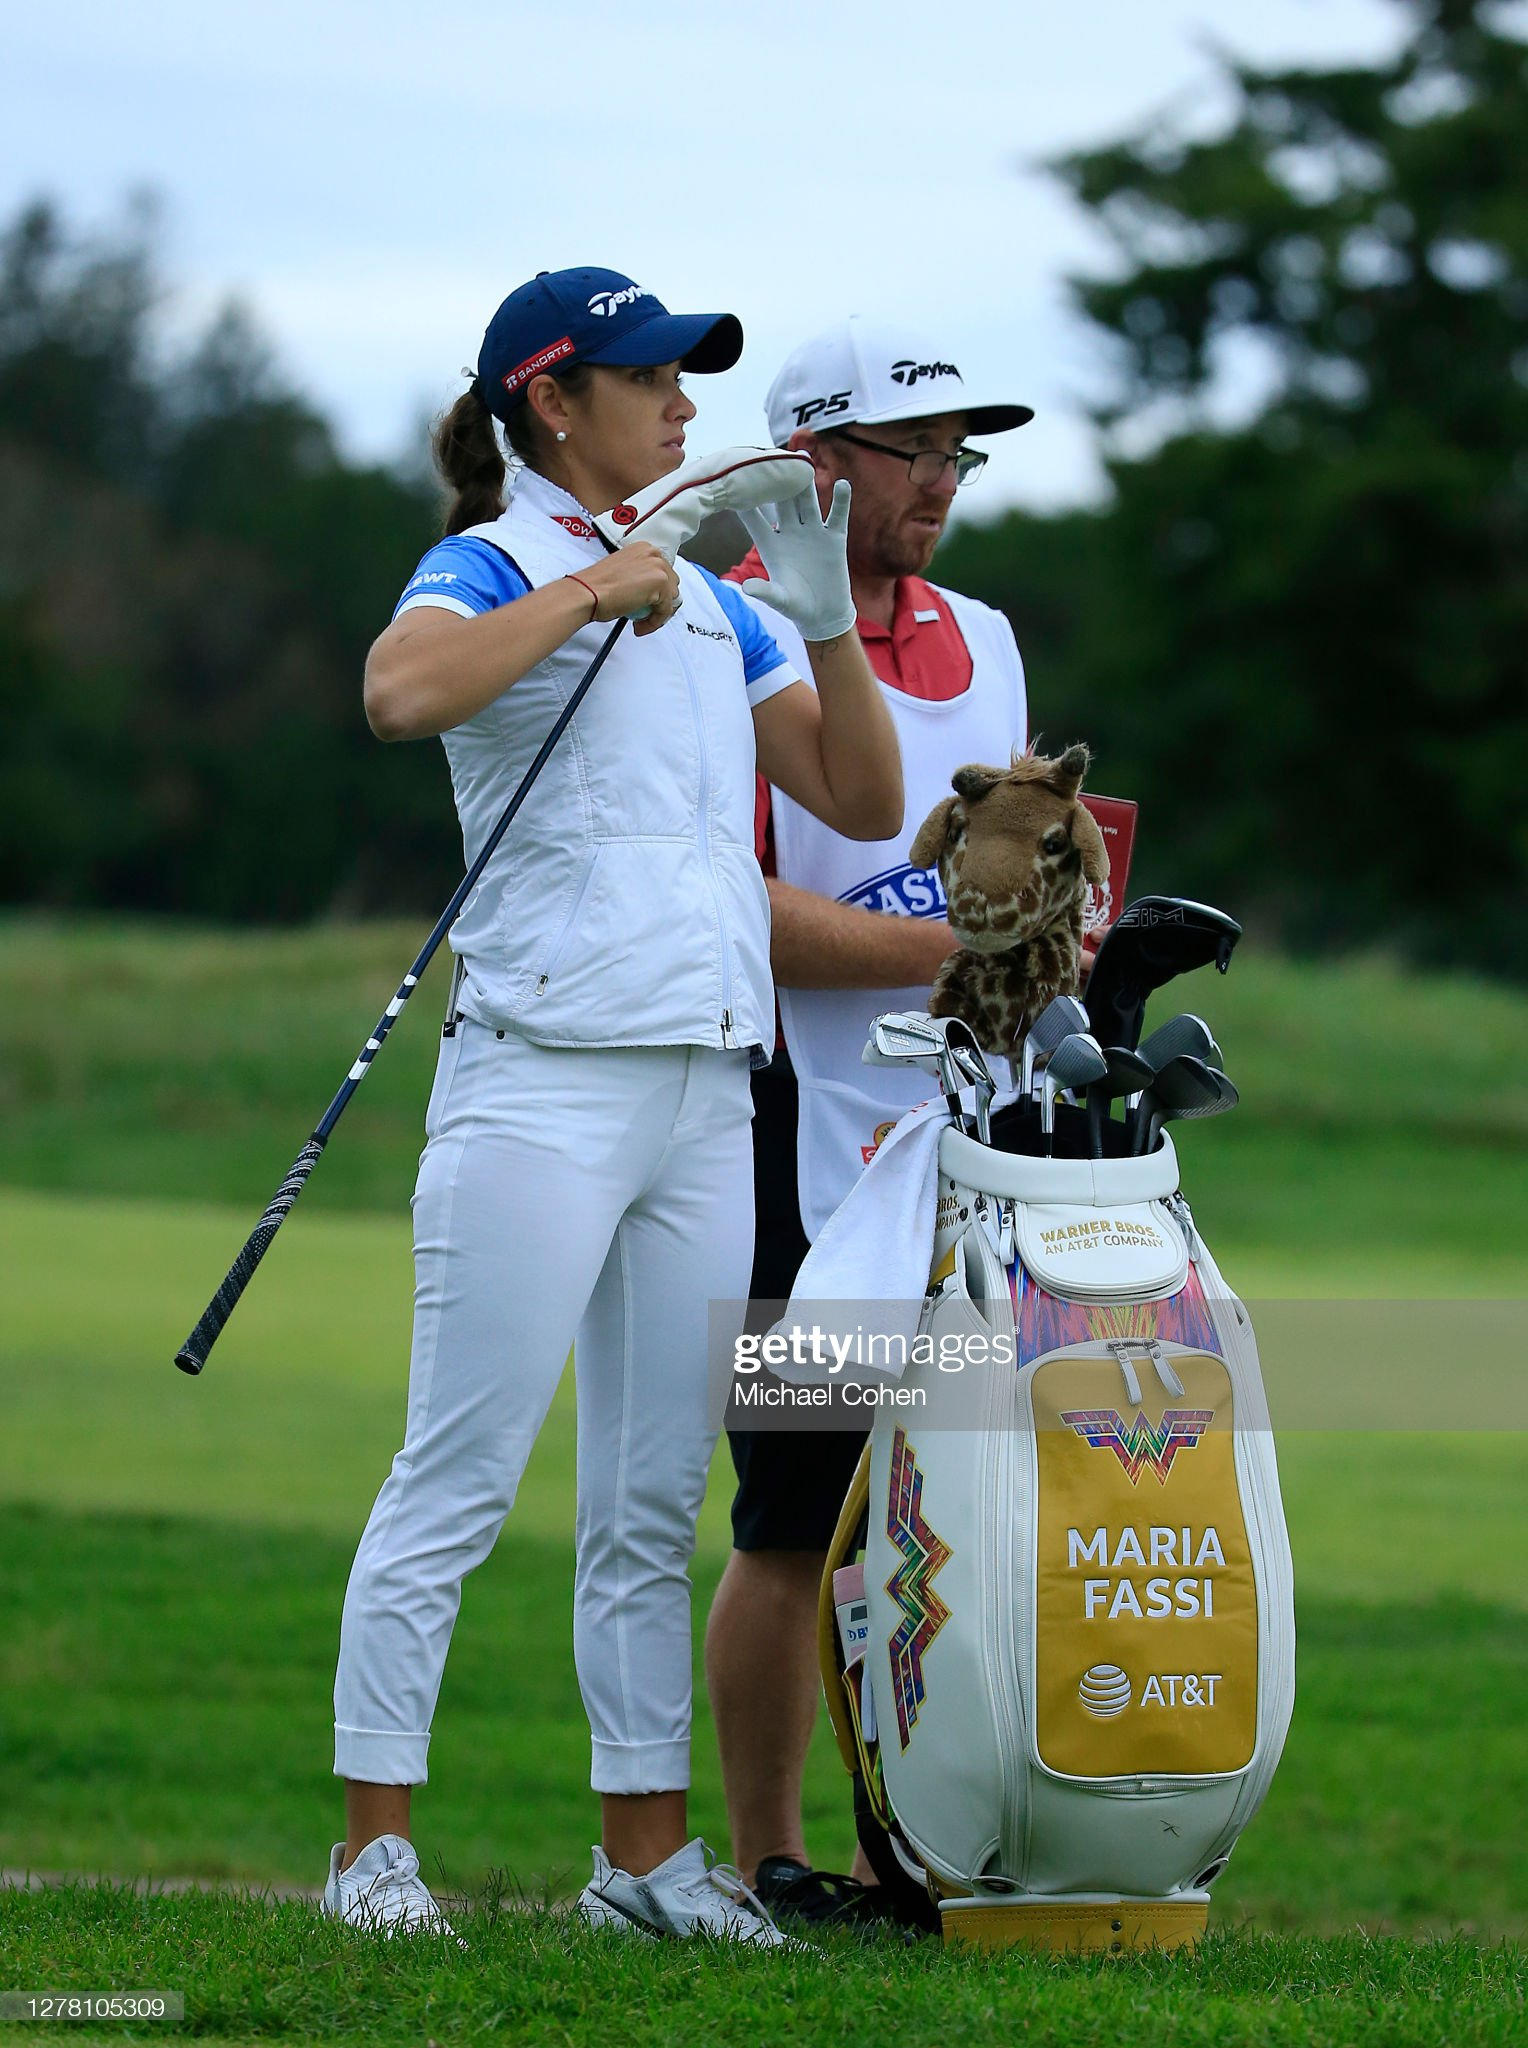 https://media.gettyimages.com/photos/maria-fassi-of-mexico-prepares-to-hit-her-drive-on-the-second-hole-picture-id1278105309?s=2048x2048